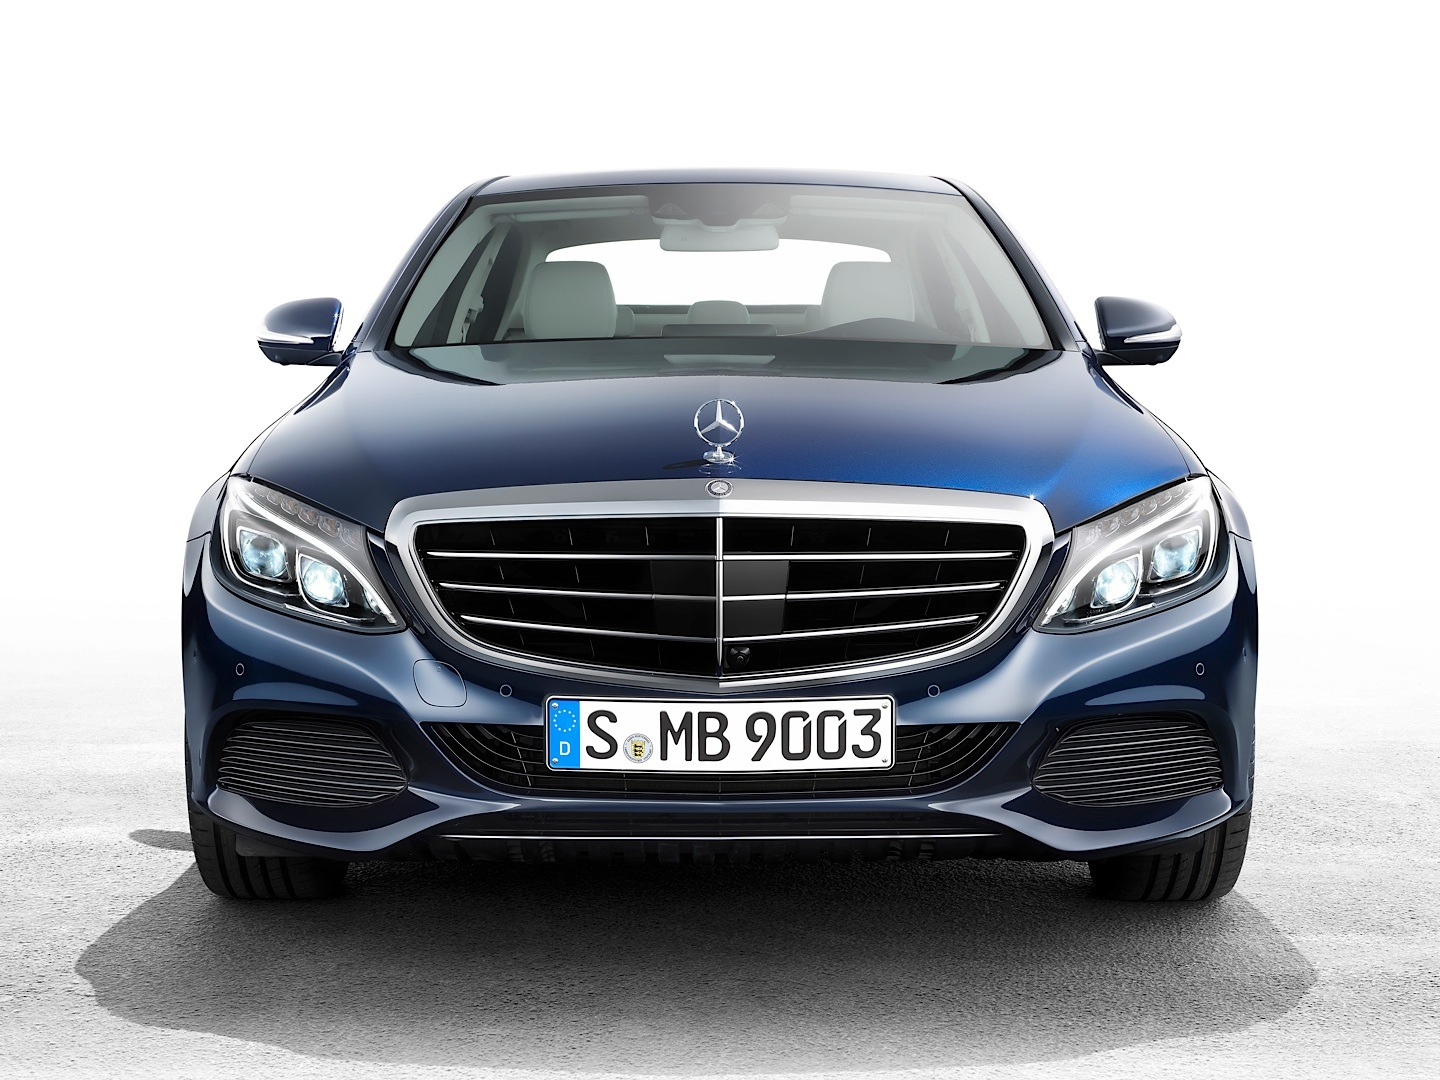 2015 mercedes benz c class sedan review msrp mpg for Mercedes benz 2015 c class price